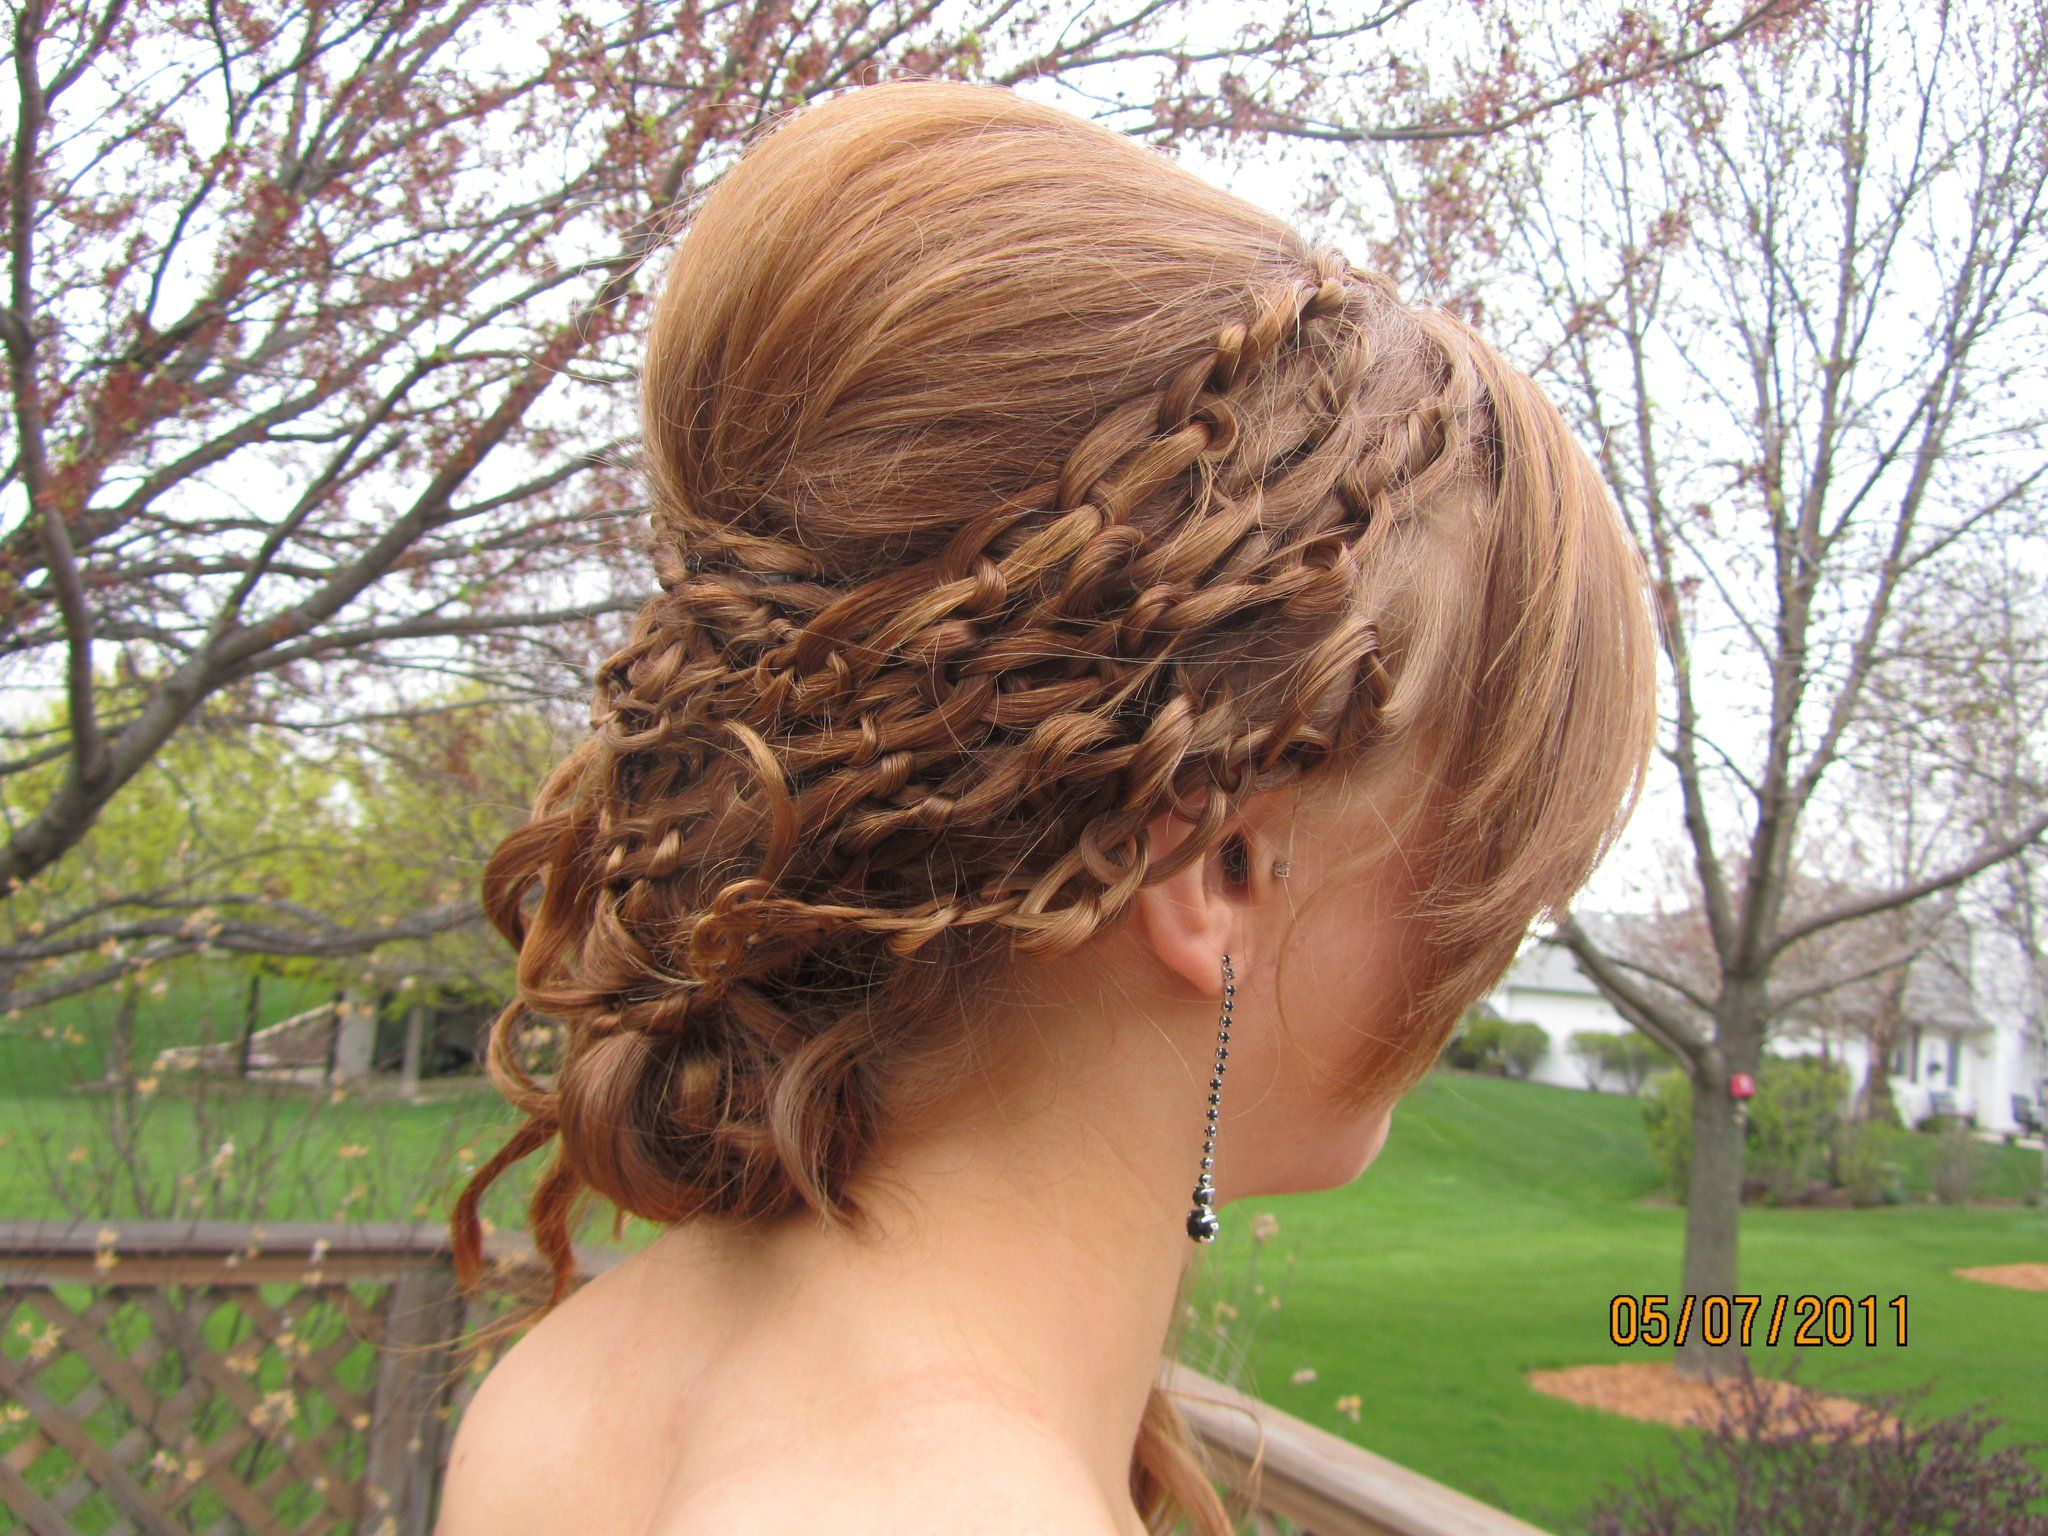 Those are actually knots It looks really cool Hair